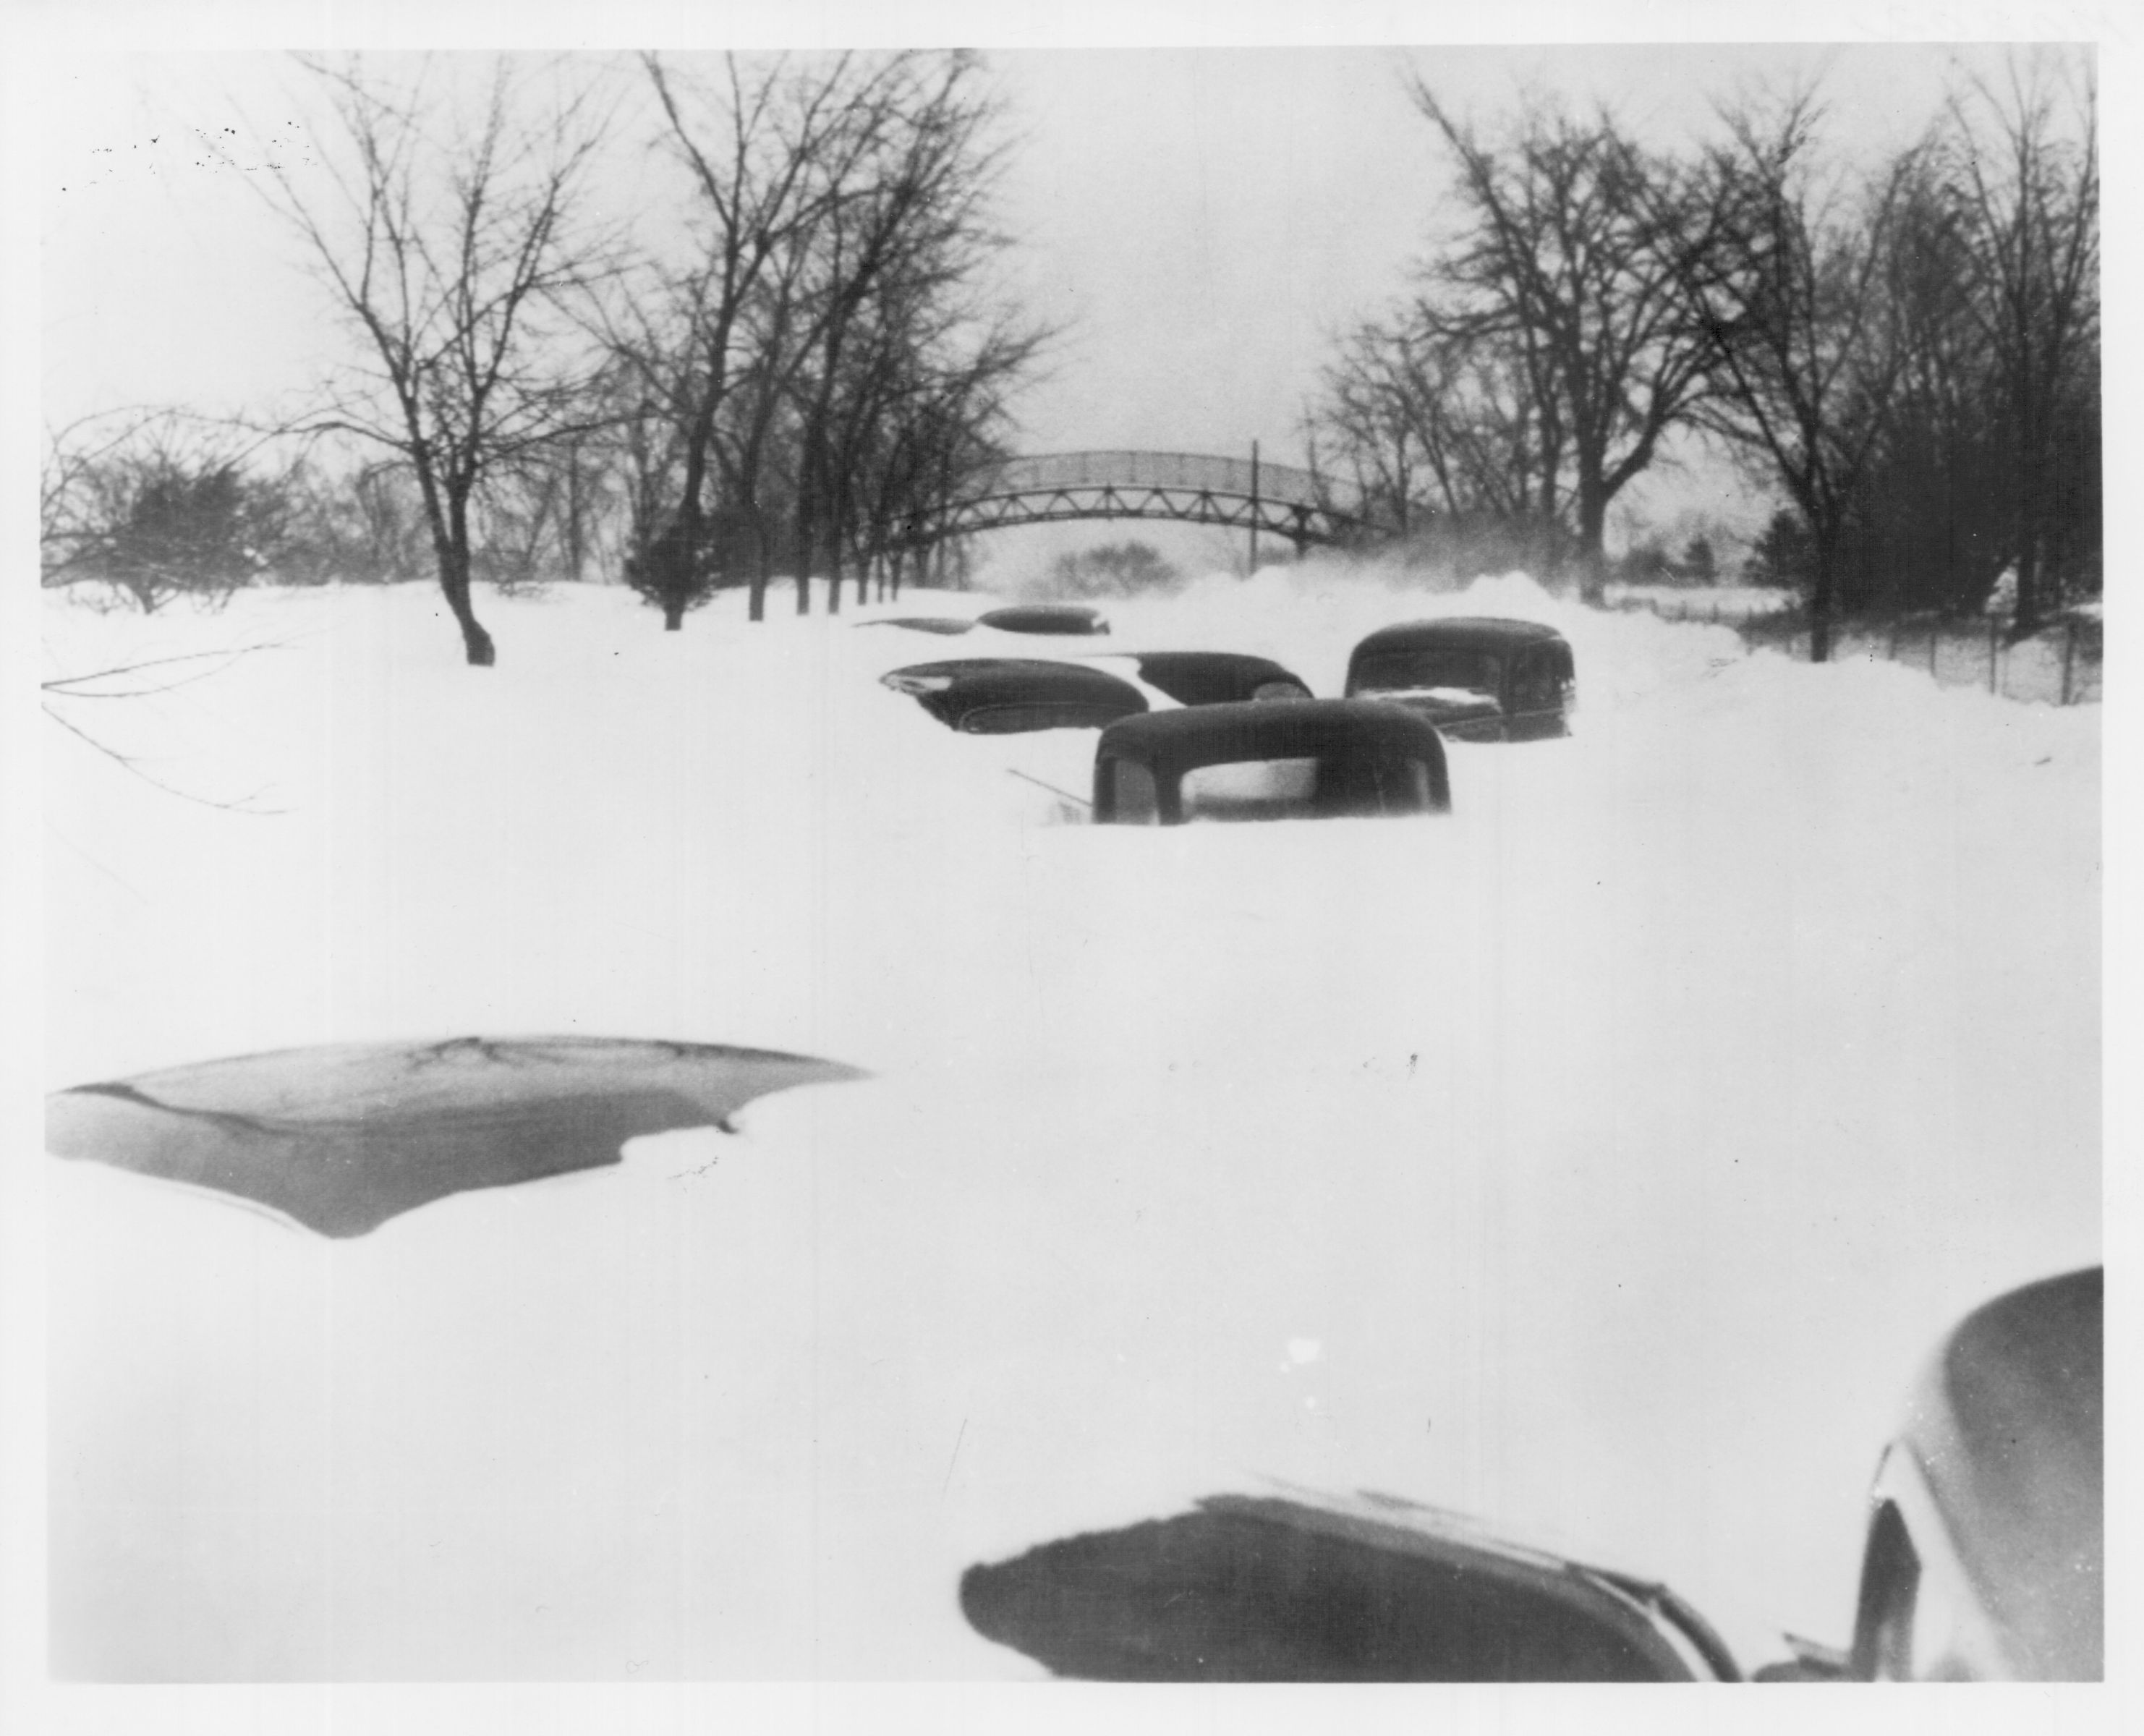 smaller version, armistice day blizzard, 1940, hclib